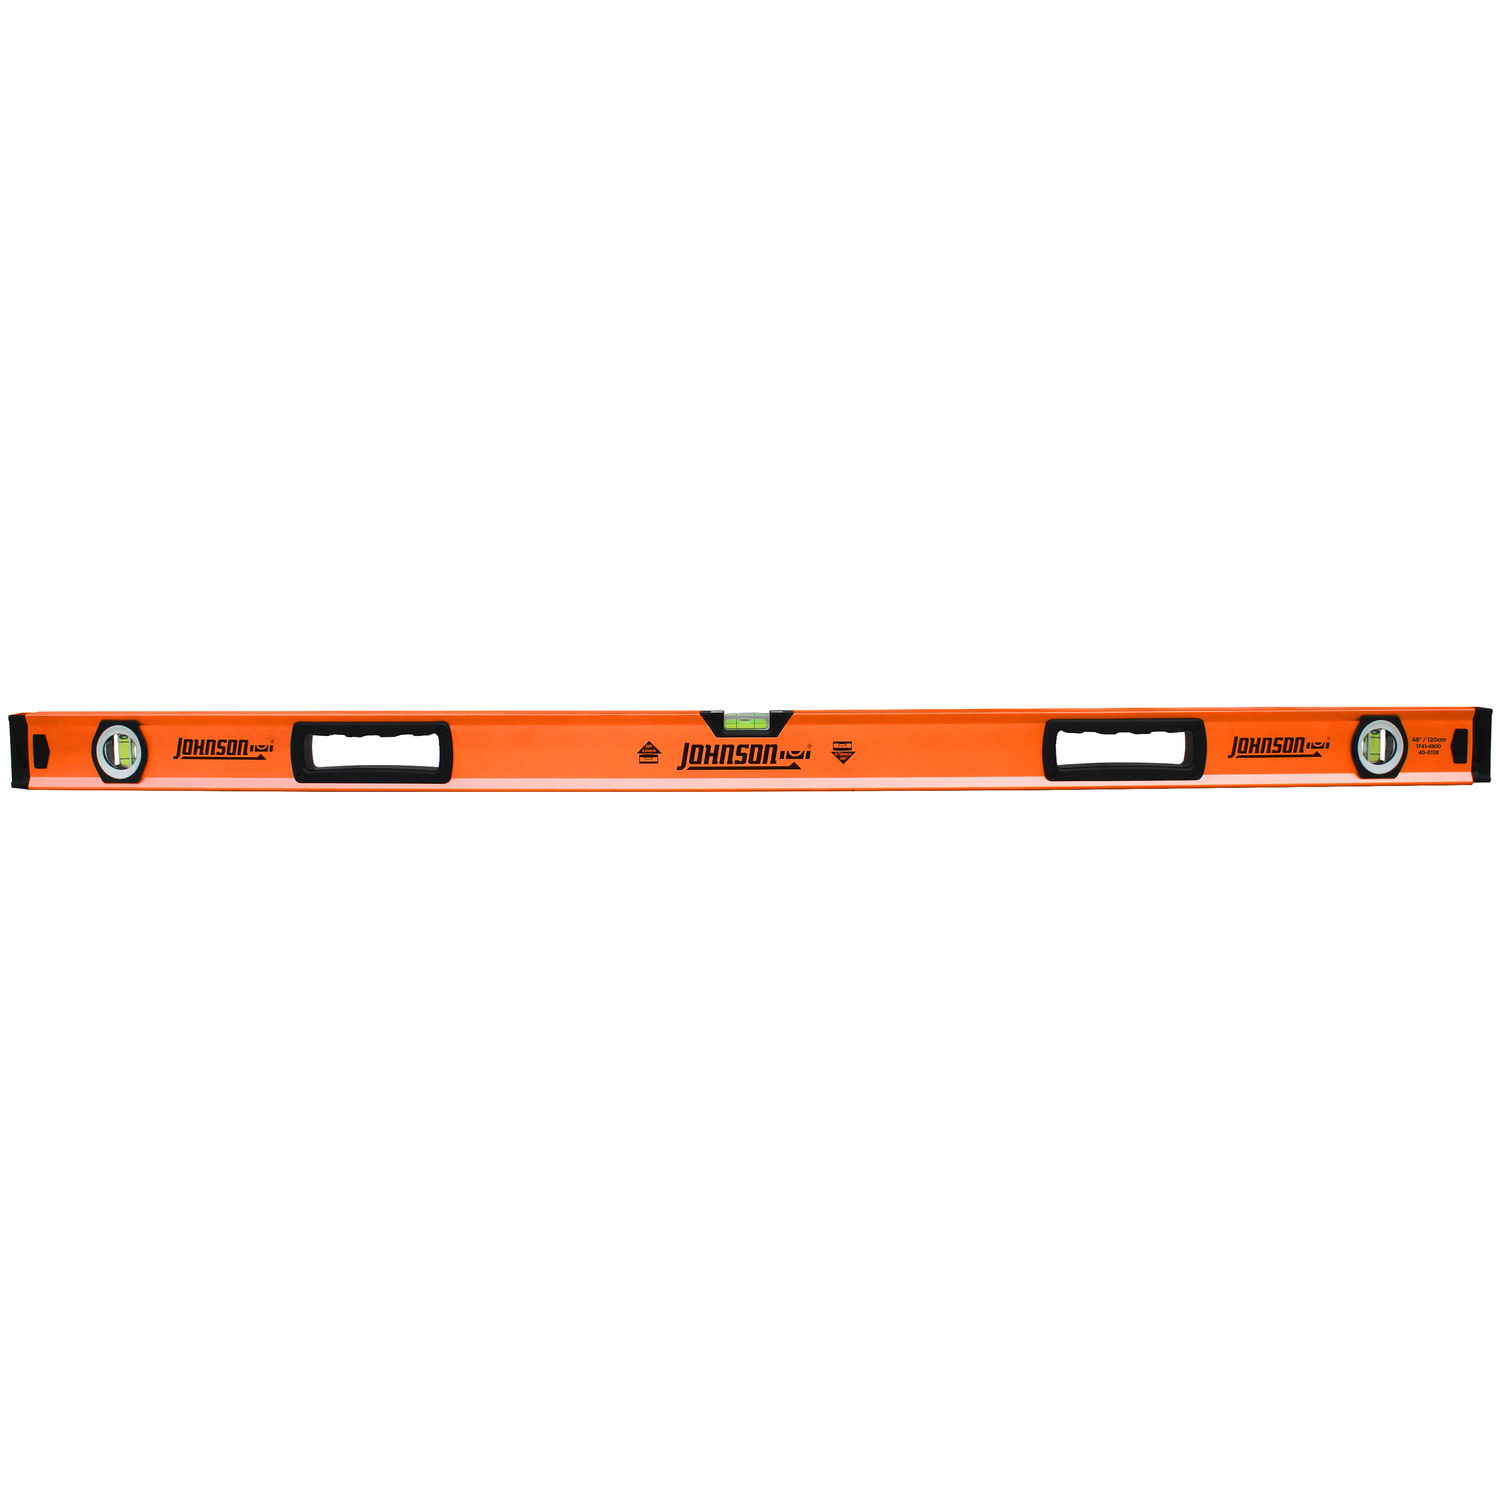 Johnson  48 in. Aluminum  Box Beam  Level  3